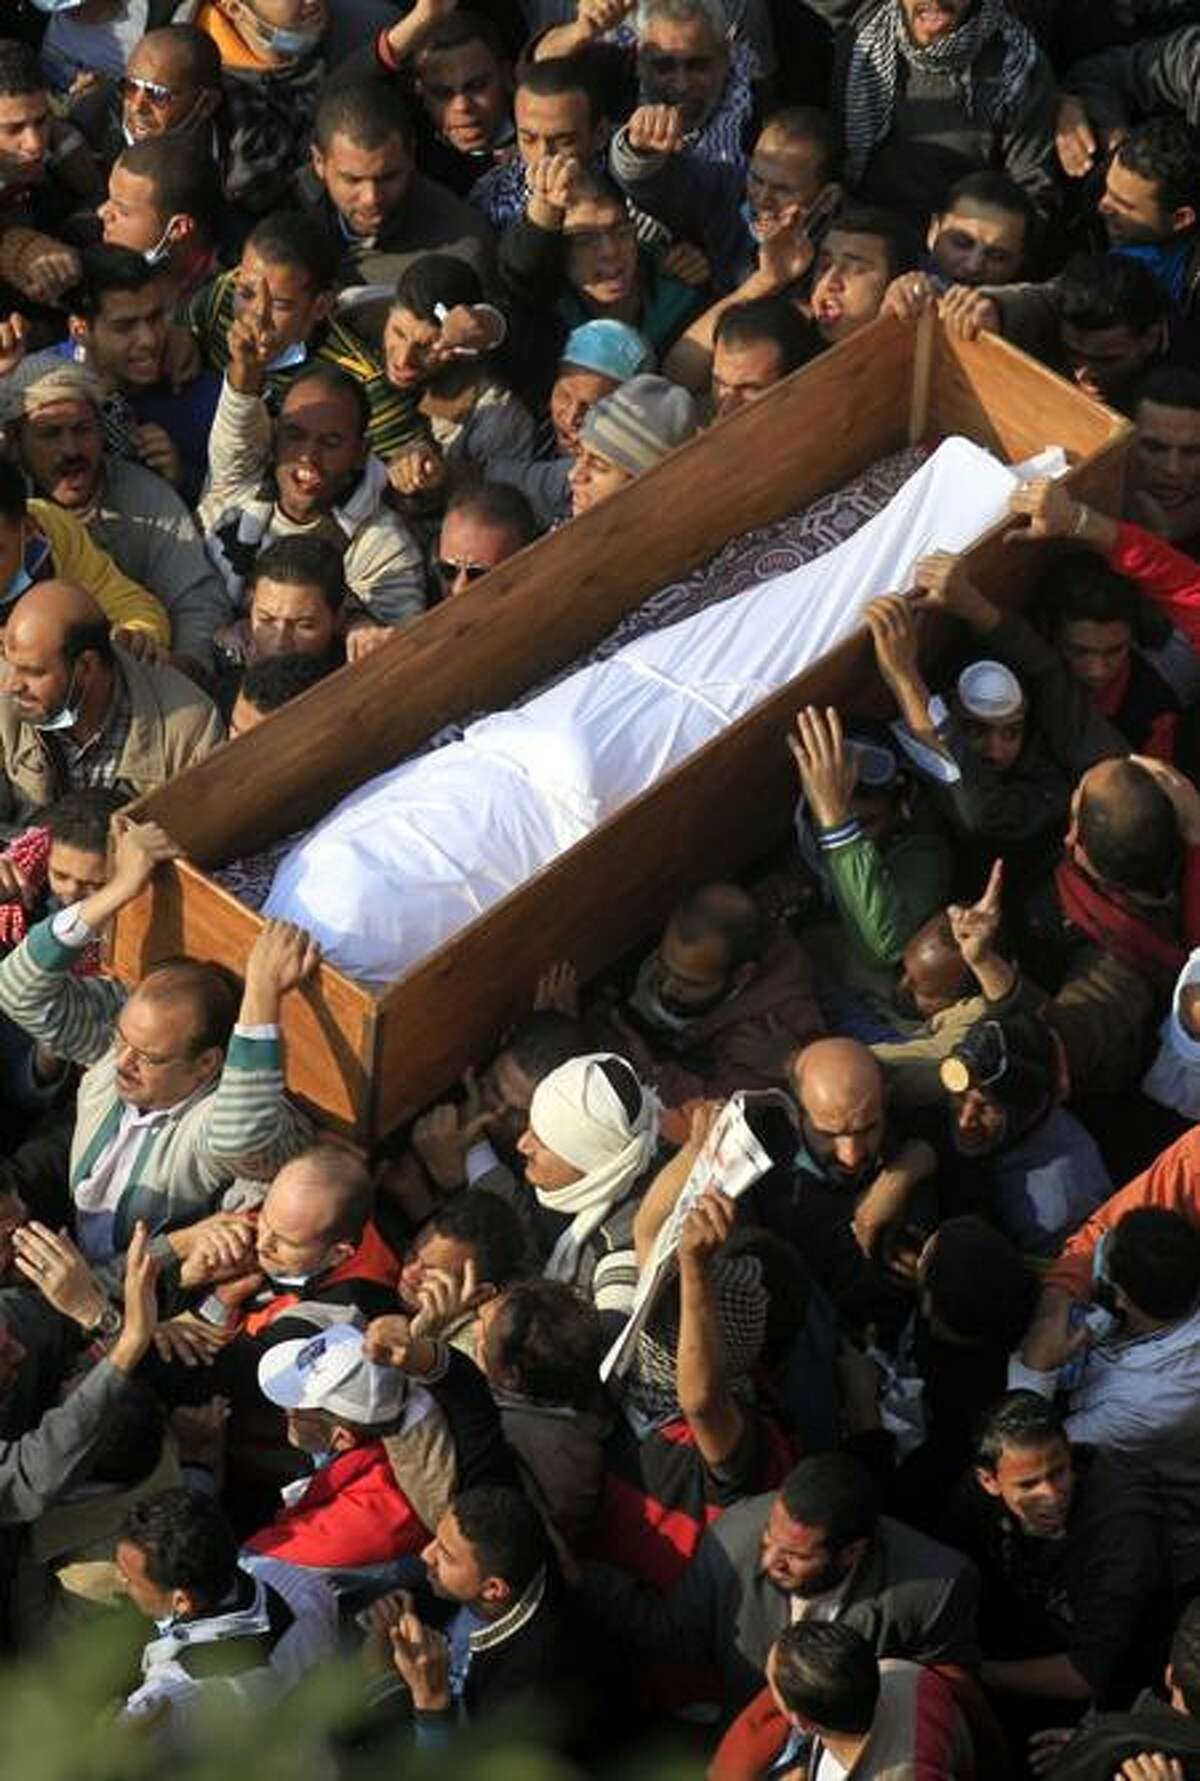 Egyptians carry a body of a protester was killed in clashes with the Egyptian riot police during his funeral at Tahrir square in Cairo, Egypt, Tuesday, Nov. 22, 2011.Egypt's civilian Cabinet has offered to resign after three days of violent clashes in many cities between demonstrators and security forces, but the action failed to satisfy protesters deeply frustrated with the new military rulers. (AP Photo/Khalil Hamra)